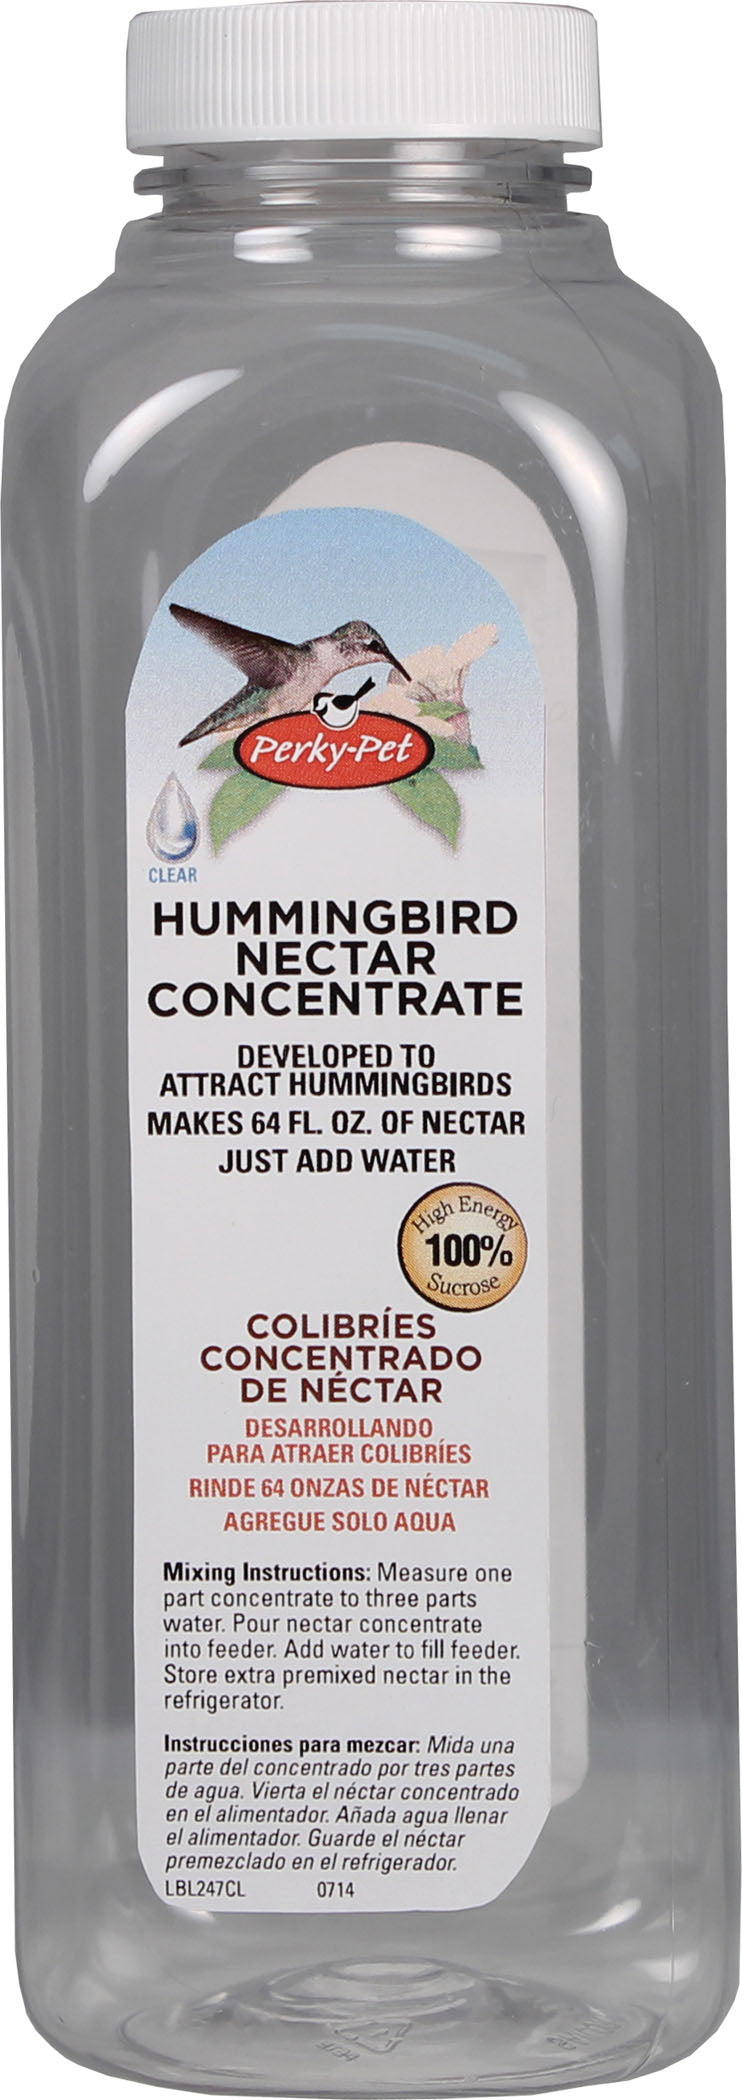 Hummingbird Nectar Concentrate